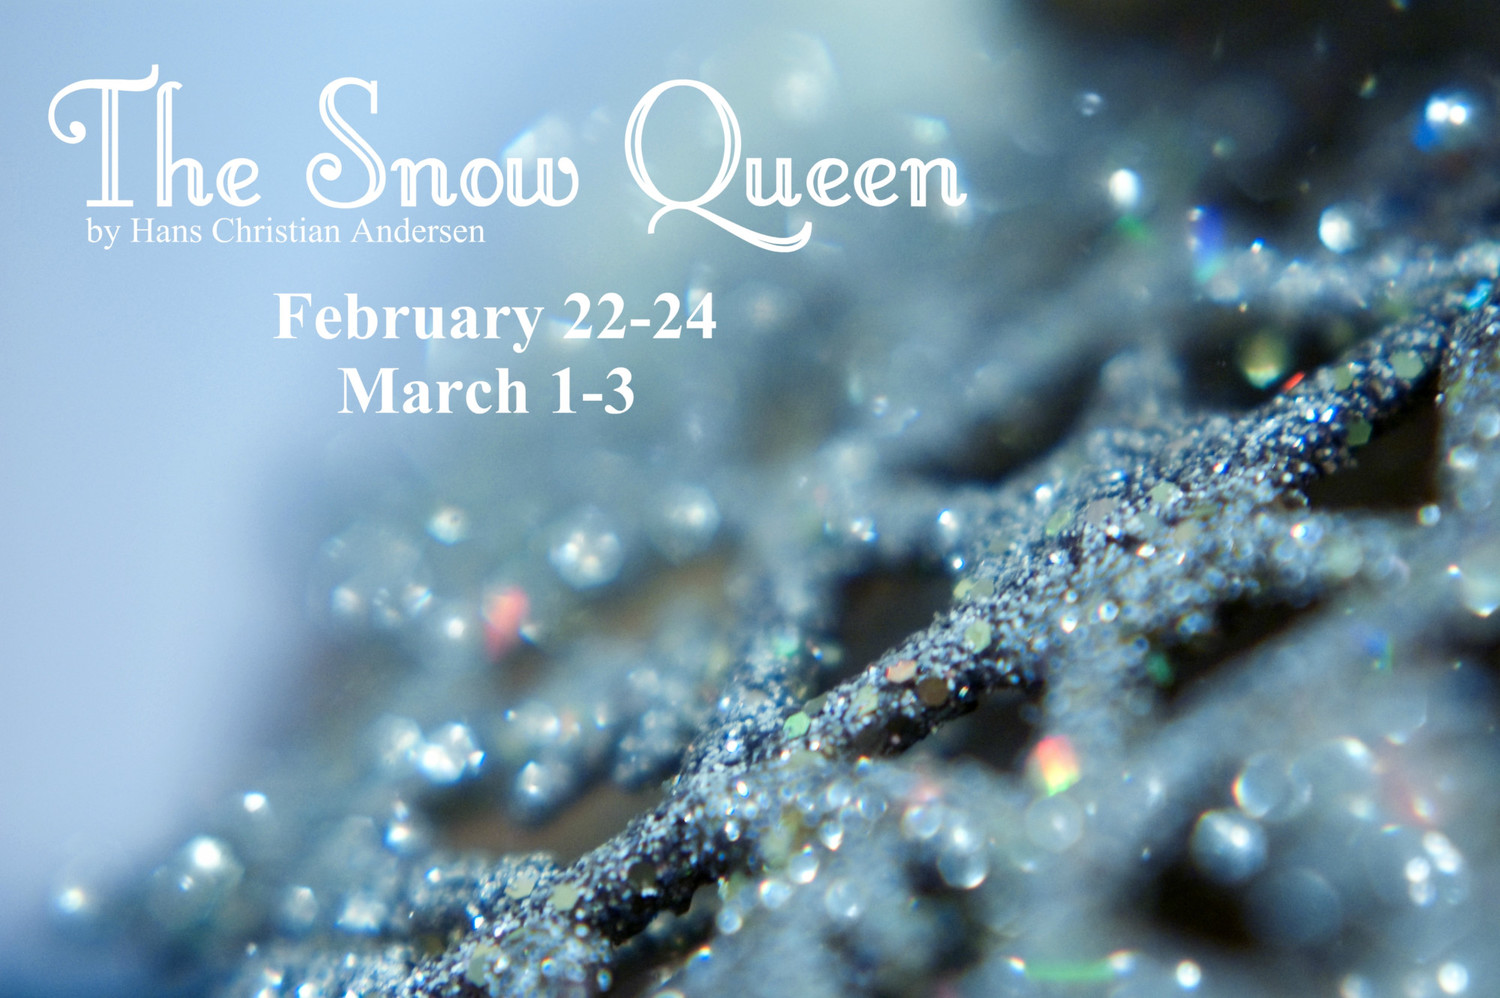 BWW Interview: Shannon Hurst of THE SNOW QUEEN at Little Door Theatre Says It's A Magical, Icy Spectacle!